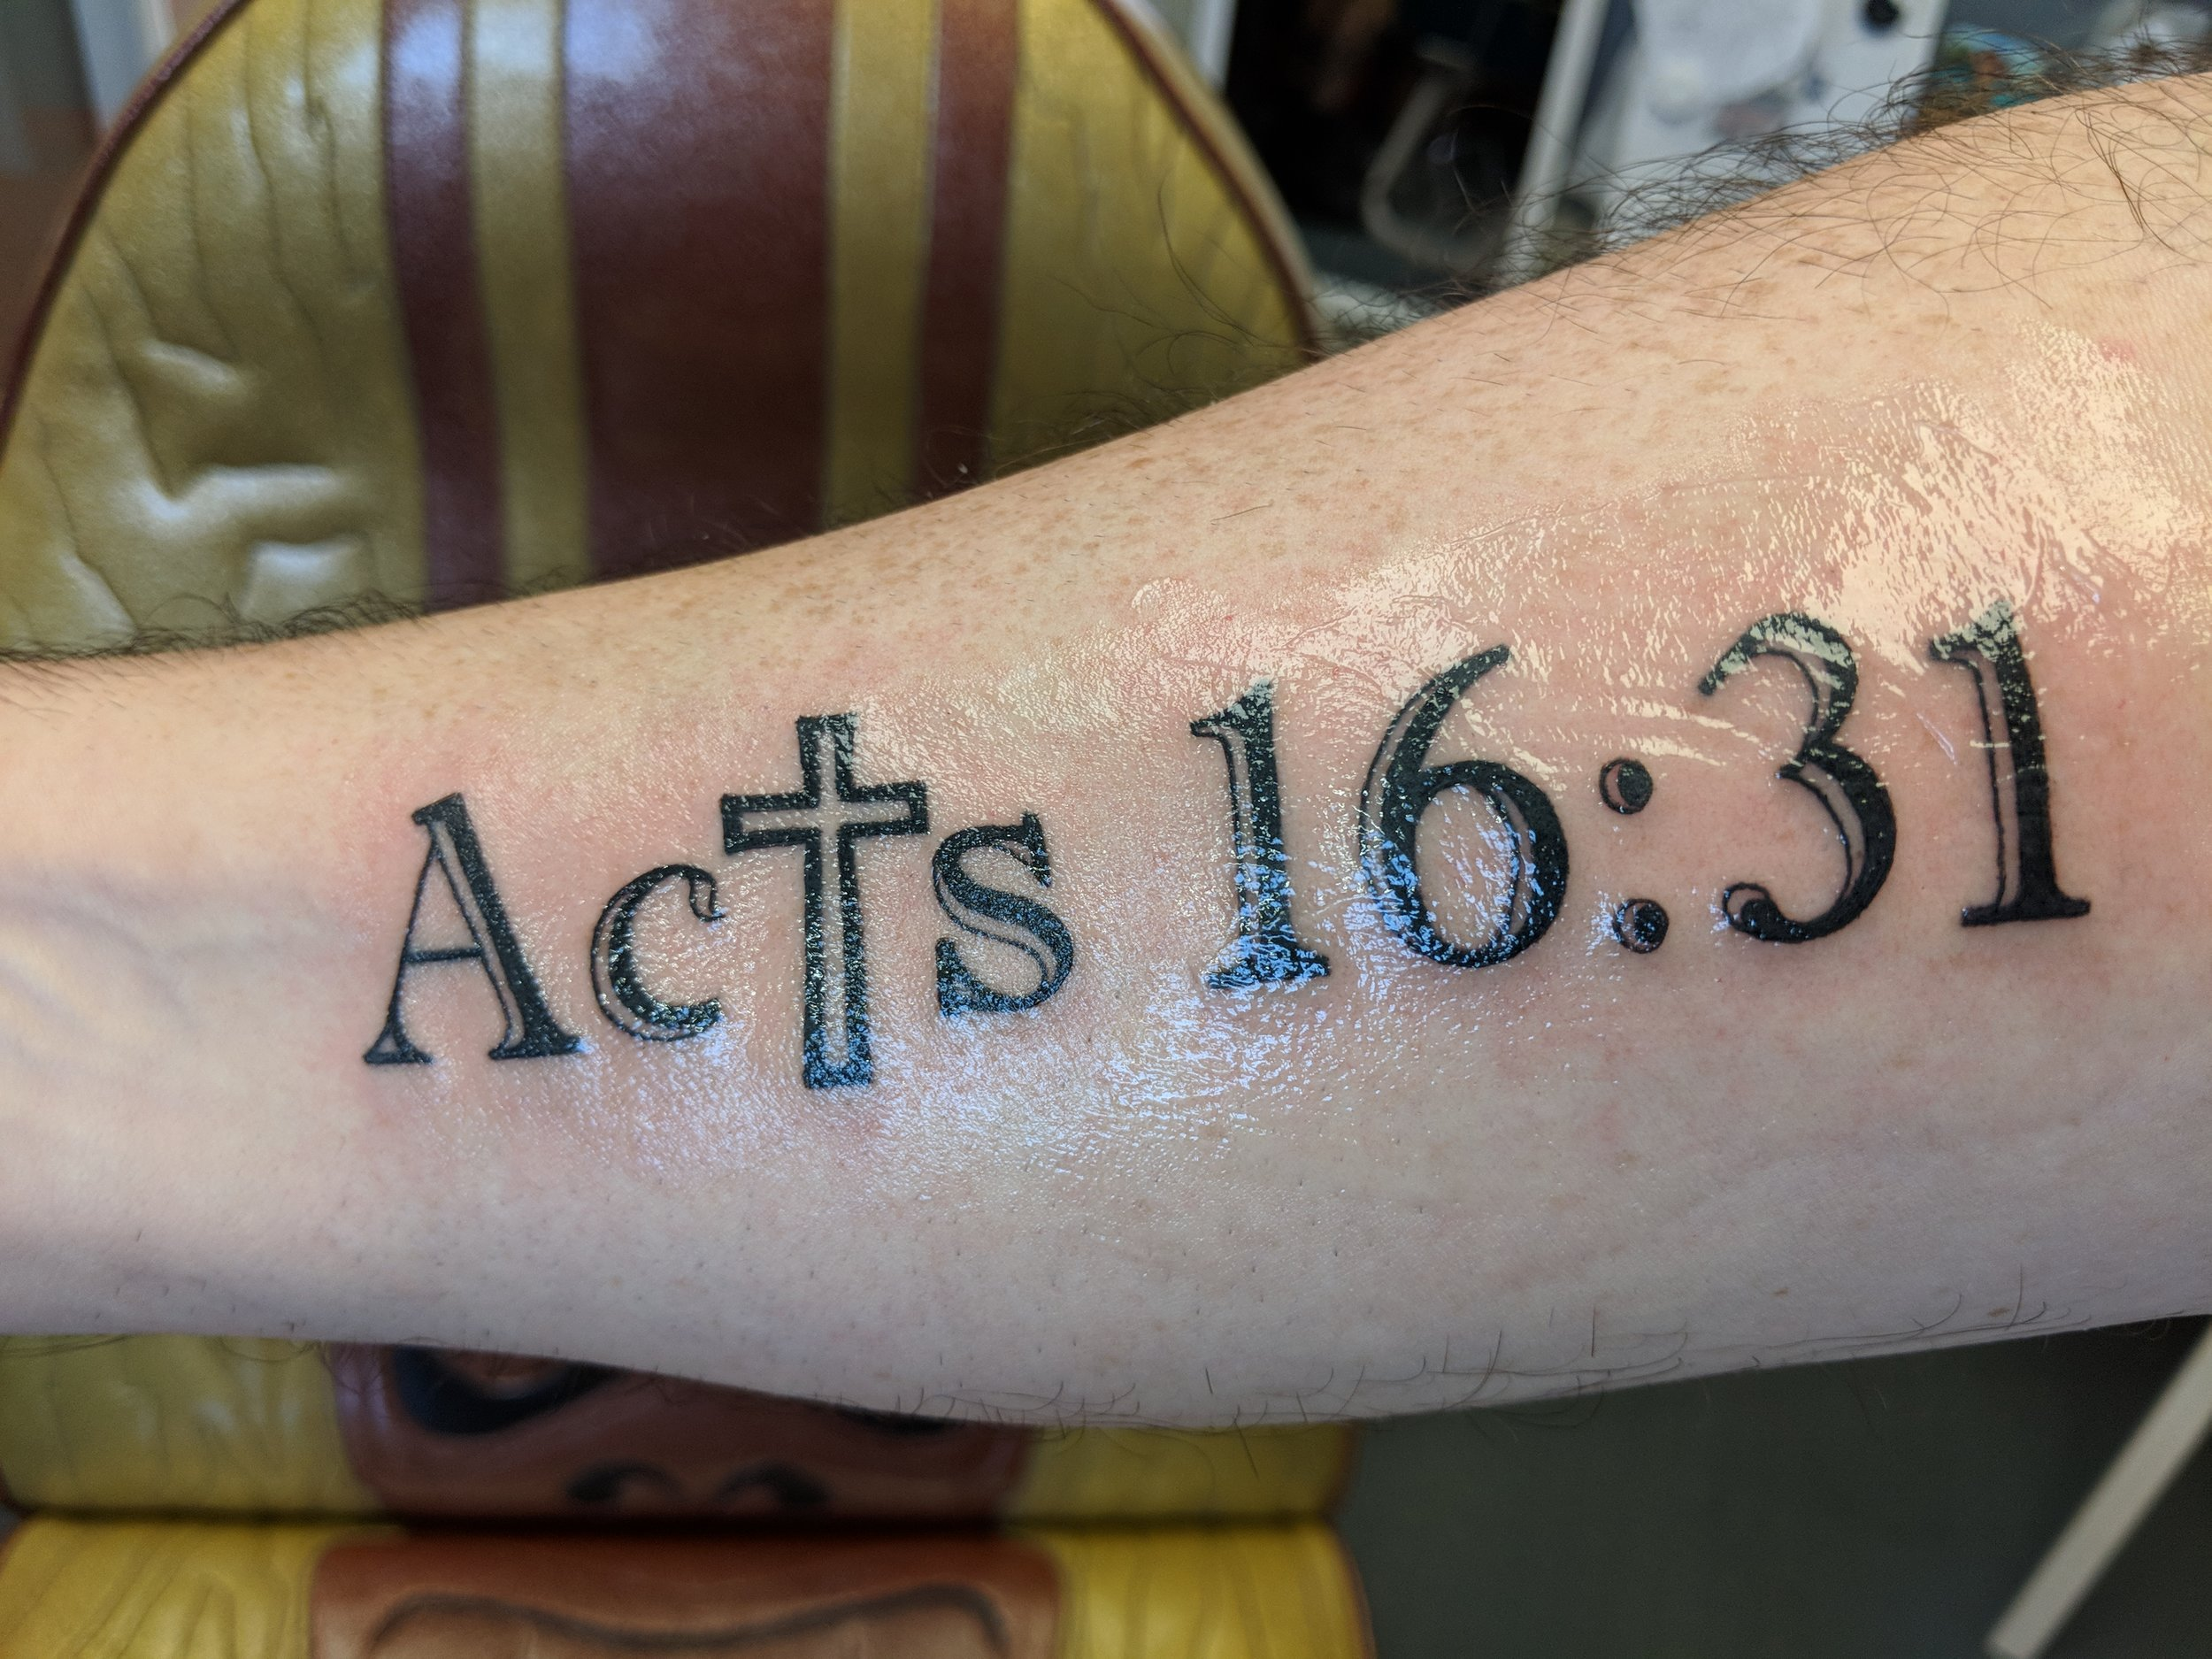 In this episode I conclude the story of my new tattoo, what it means and how that passage impacted my relationship with God. -